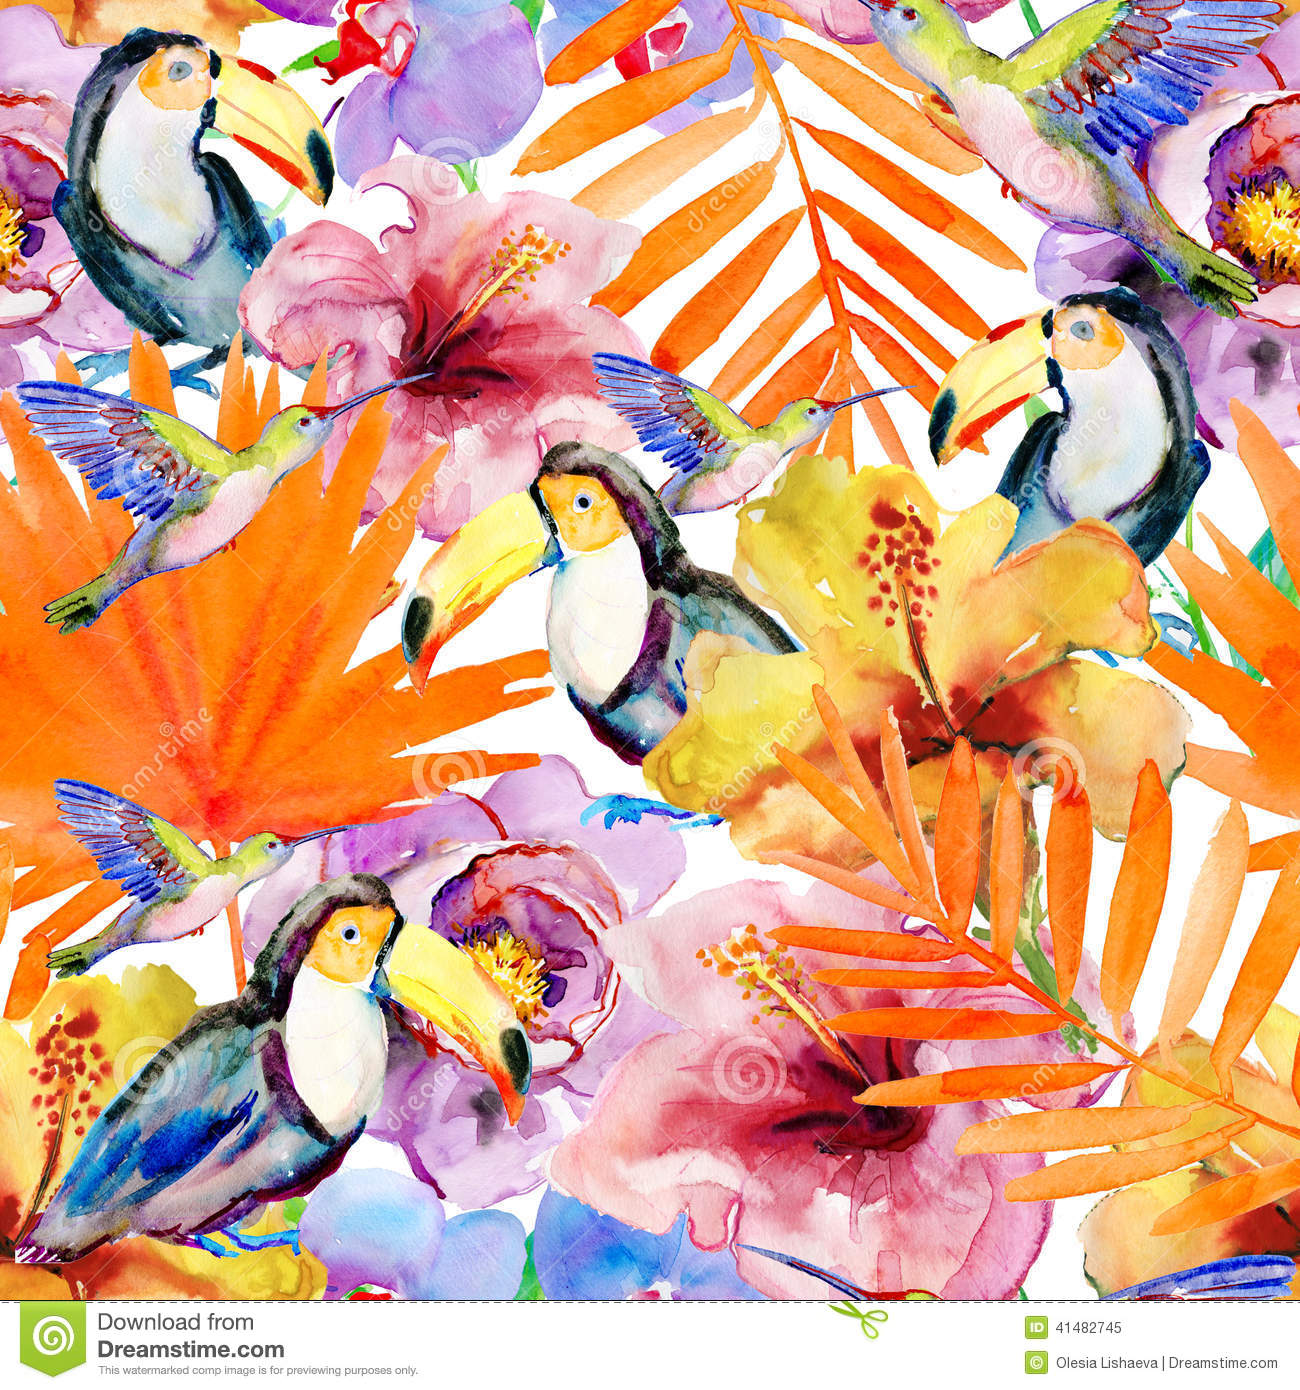 Flowers and birds on a white background. painting